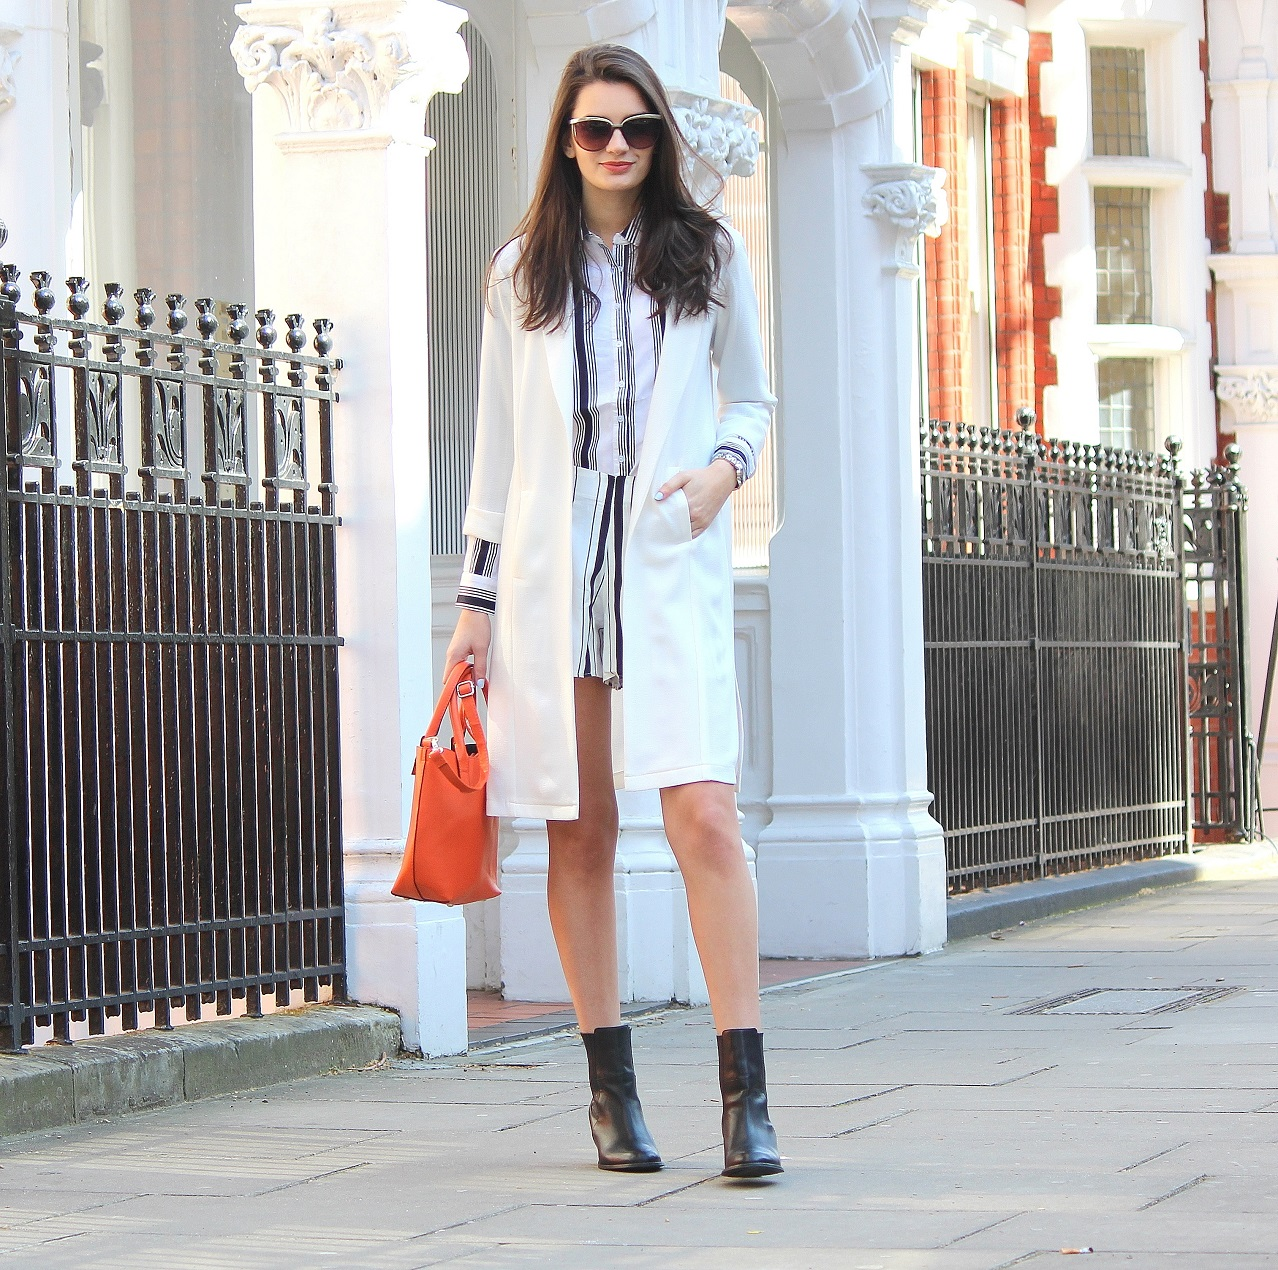 peexo-fashion-blogger-wearing-all-white-stripes-coord-and-longline-blazer-and-orange-bag